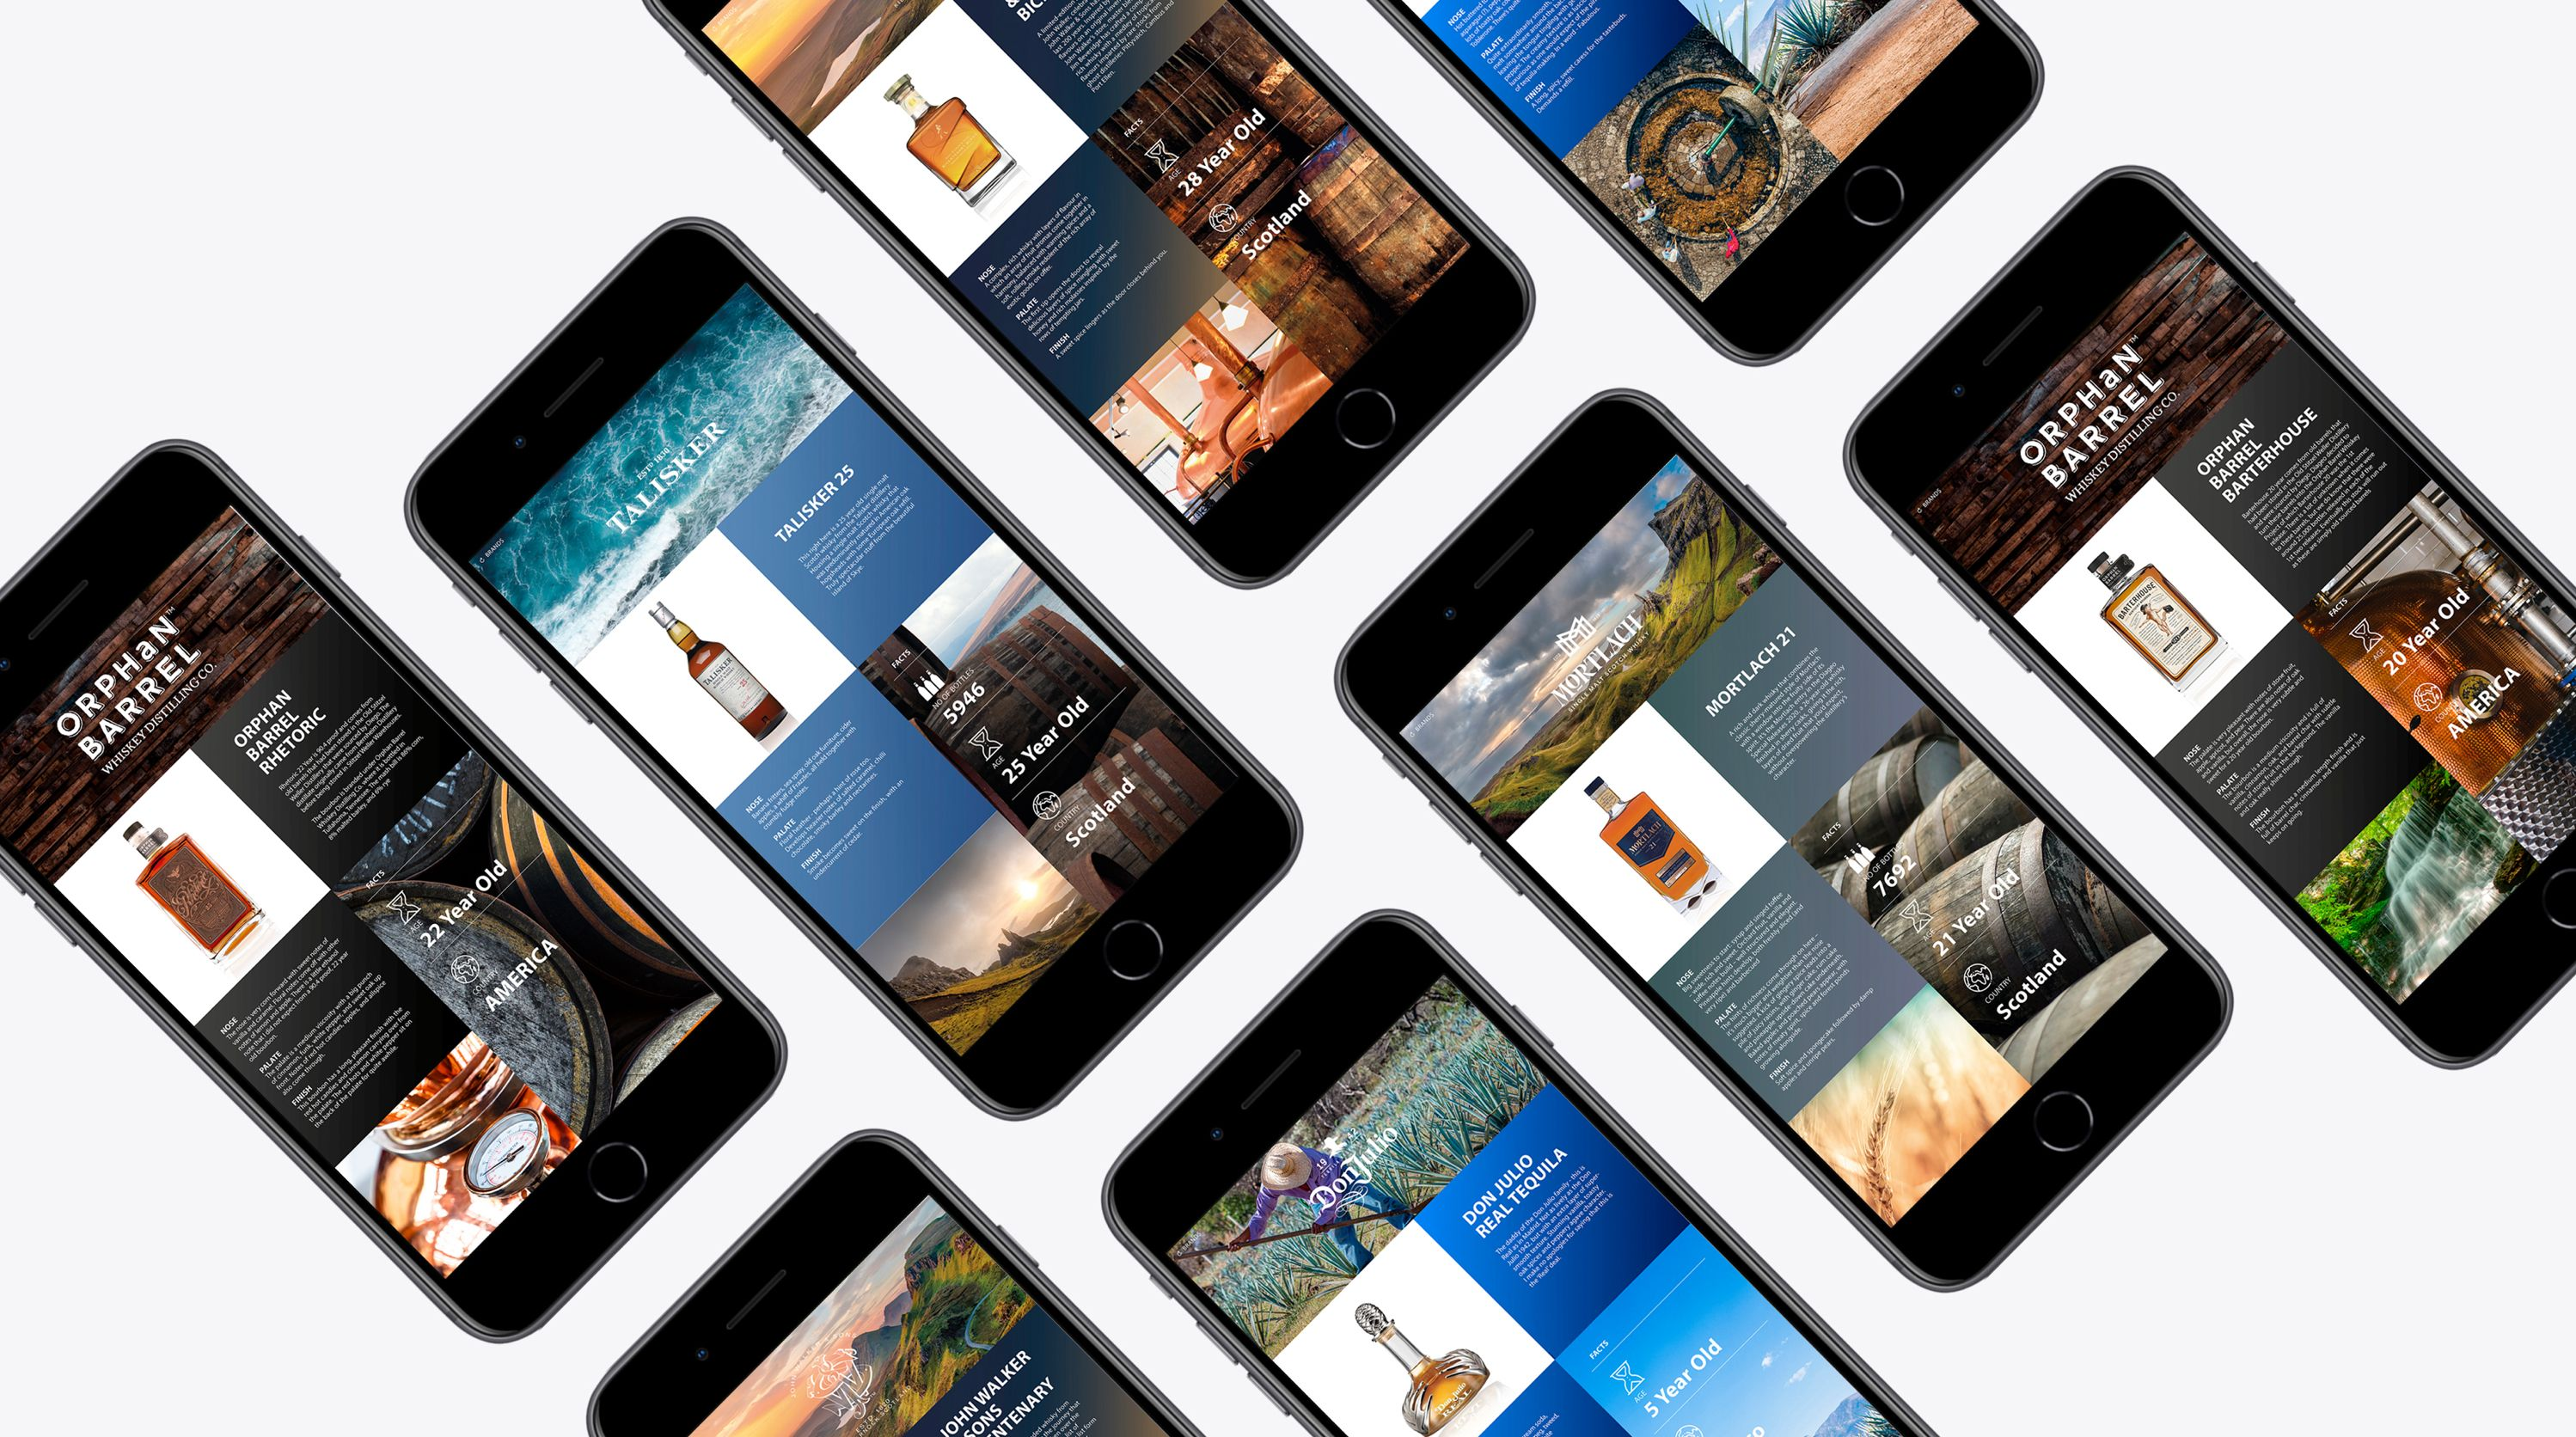 DCC apps shown on multiple phones